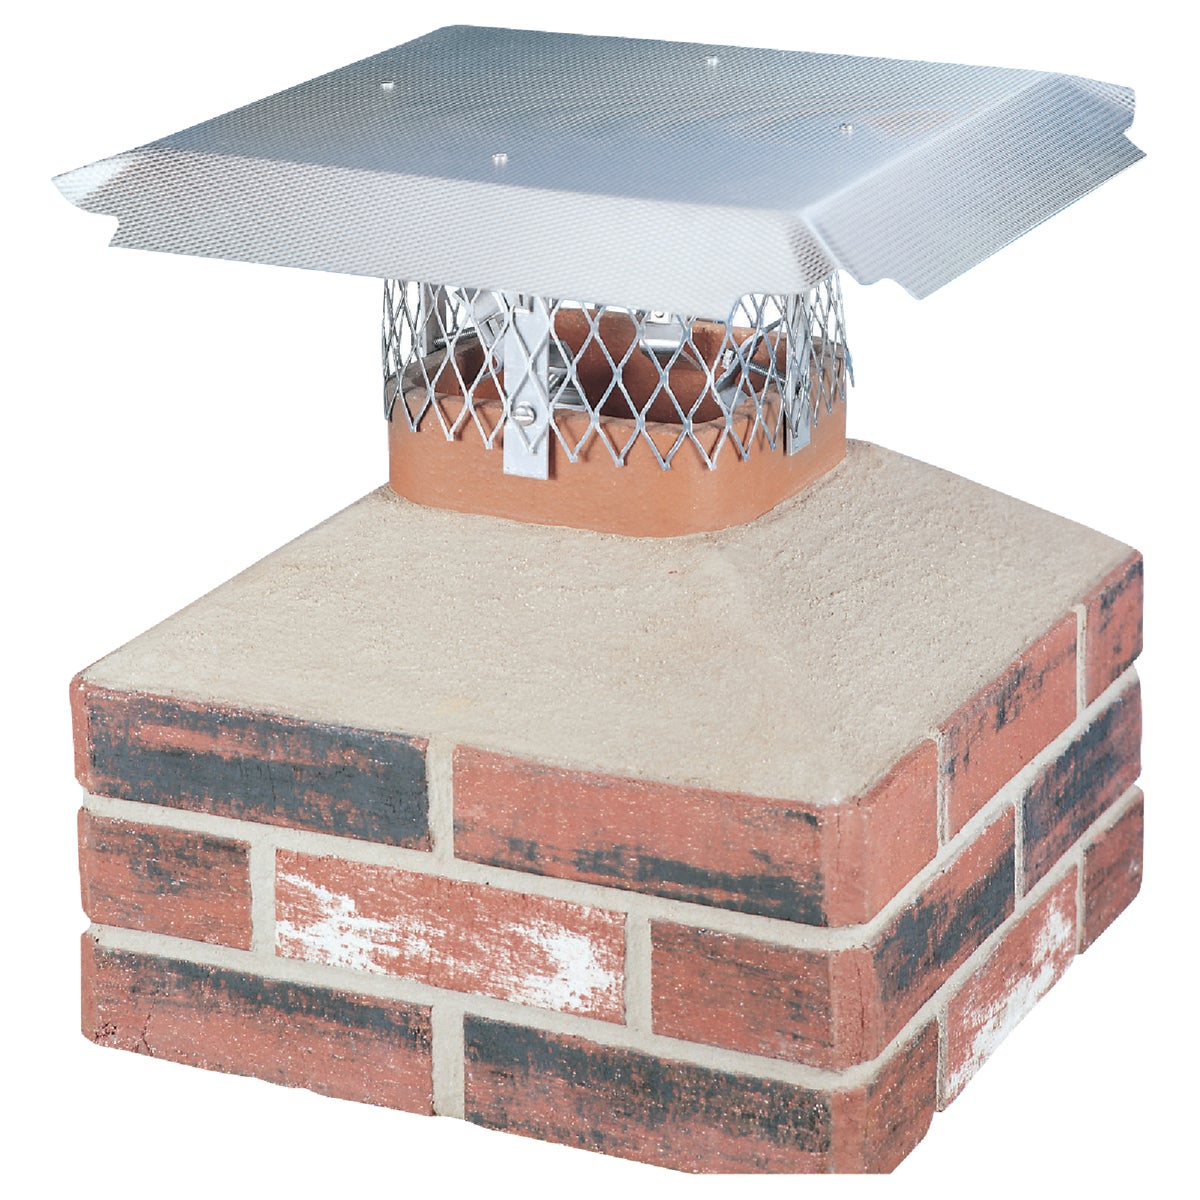 ALUM CHIMNEY COVER - MF303 by Hy C Company